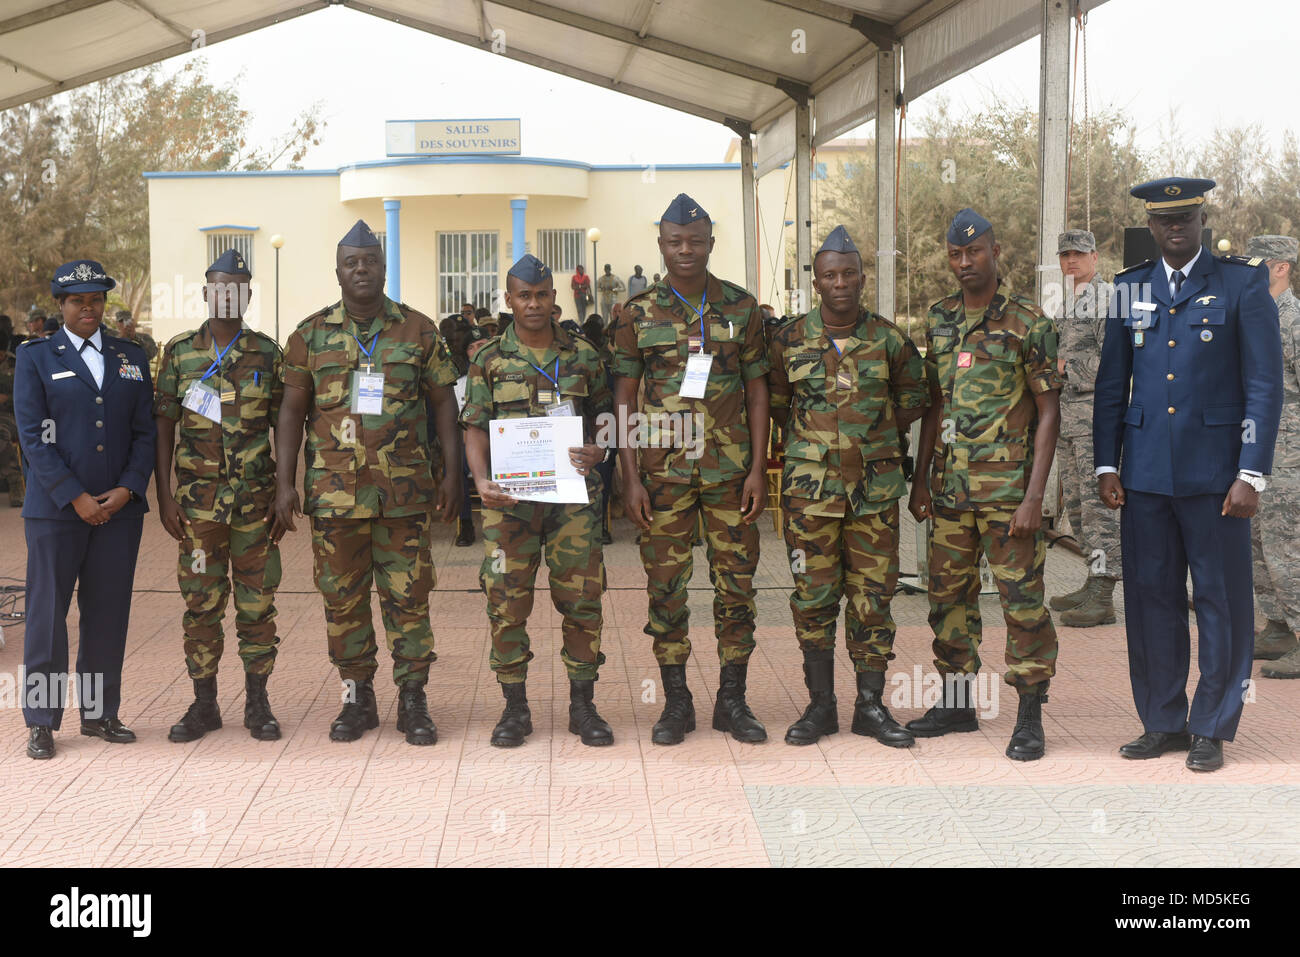 African Partnership Flight participants from Togo pose for a photo after the closing ceremony for APF at Captain Andalla Cissé Air Base, Senegal, March 23, 2018. The APF program is U.S. Air Forces in Africa's premier security cooperation program with African partner nations, with the goal of improving professional military aviation knowledge and skills. (U.S. Air Force photo by Airman 1st Class Eli Chevalier)  (U.S. Air Force photo by Airman 1st Class Eli Chevalier) - Stock Image